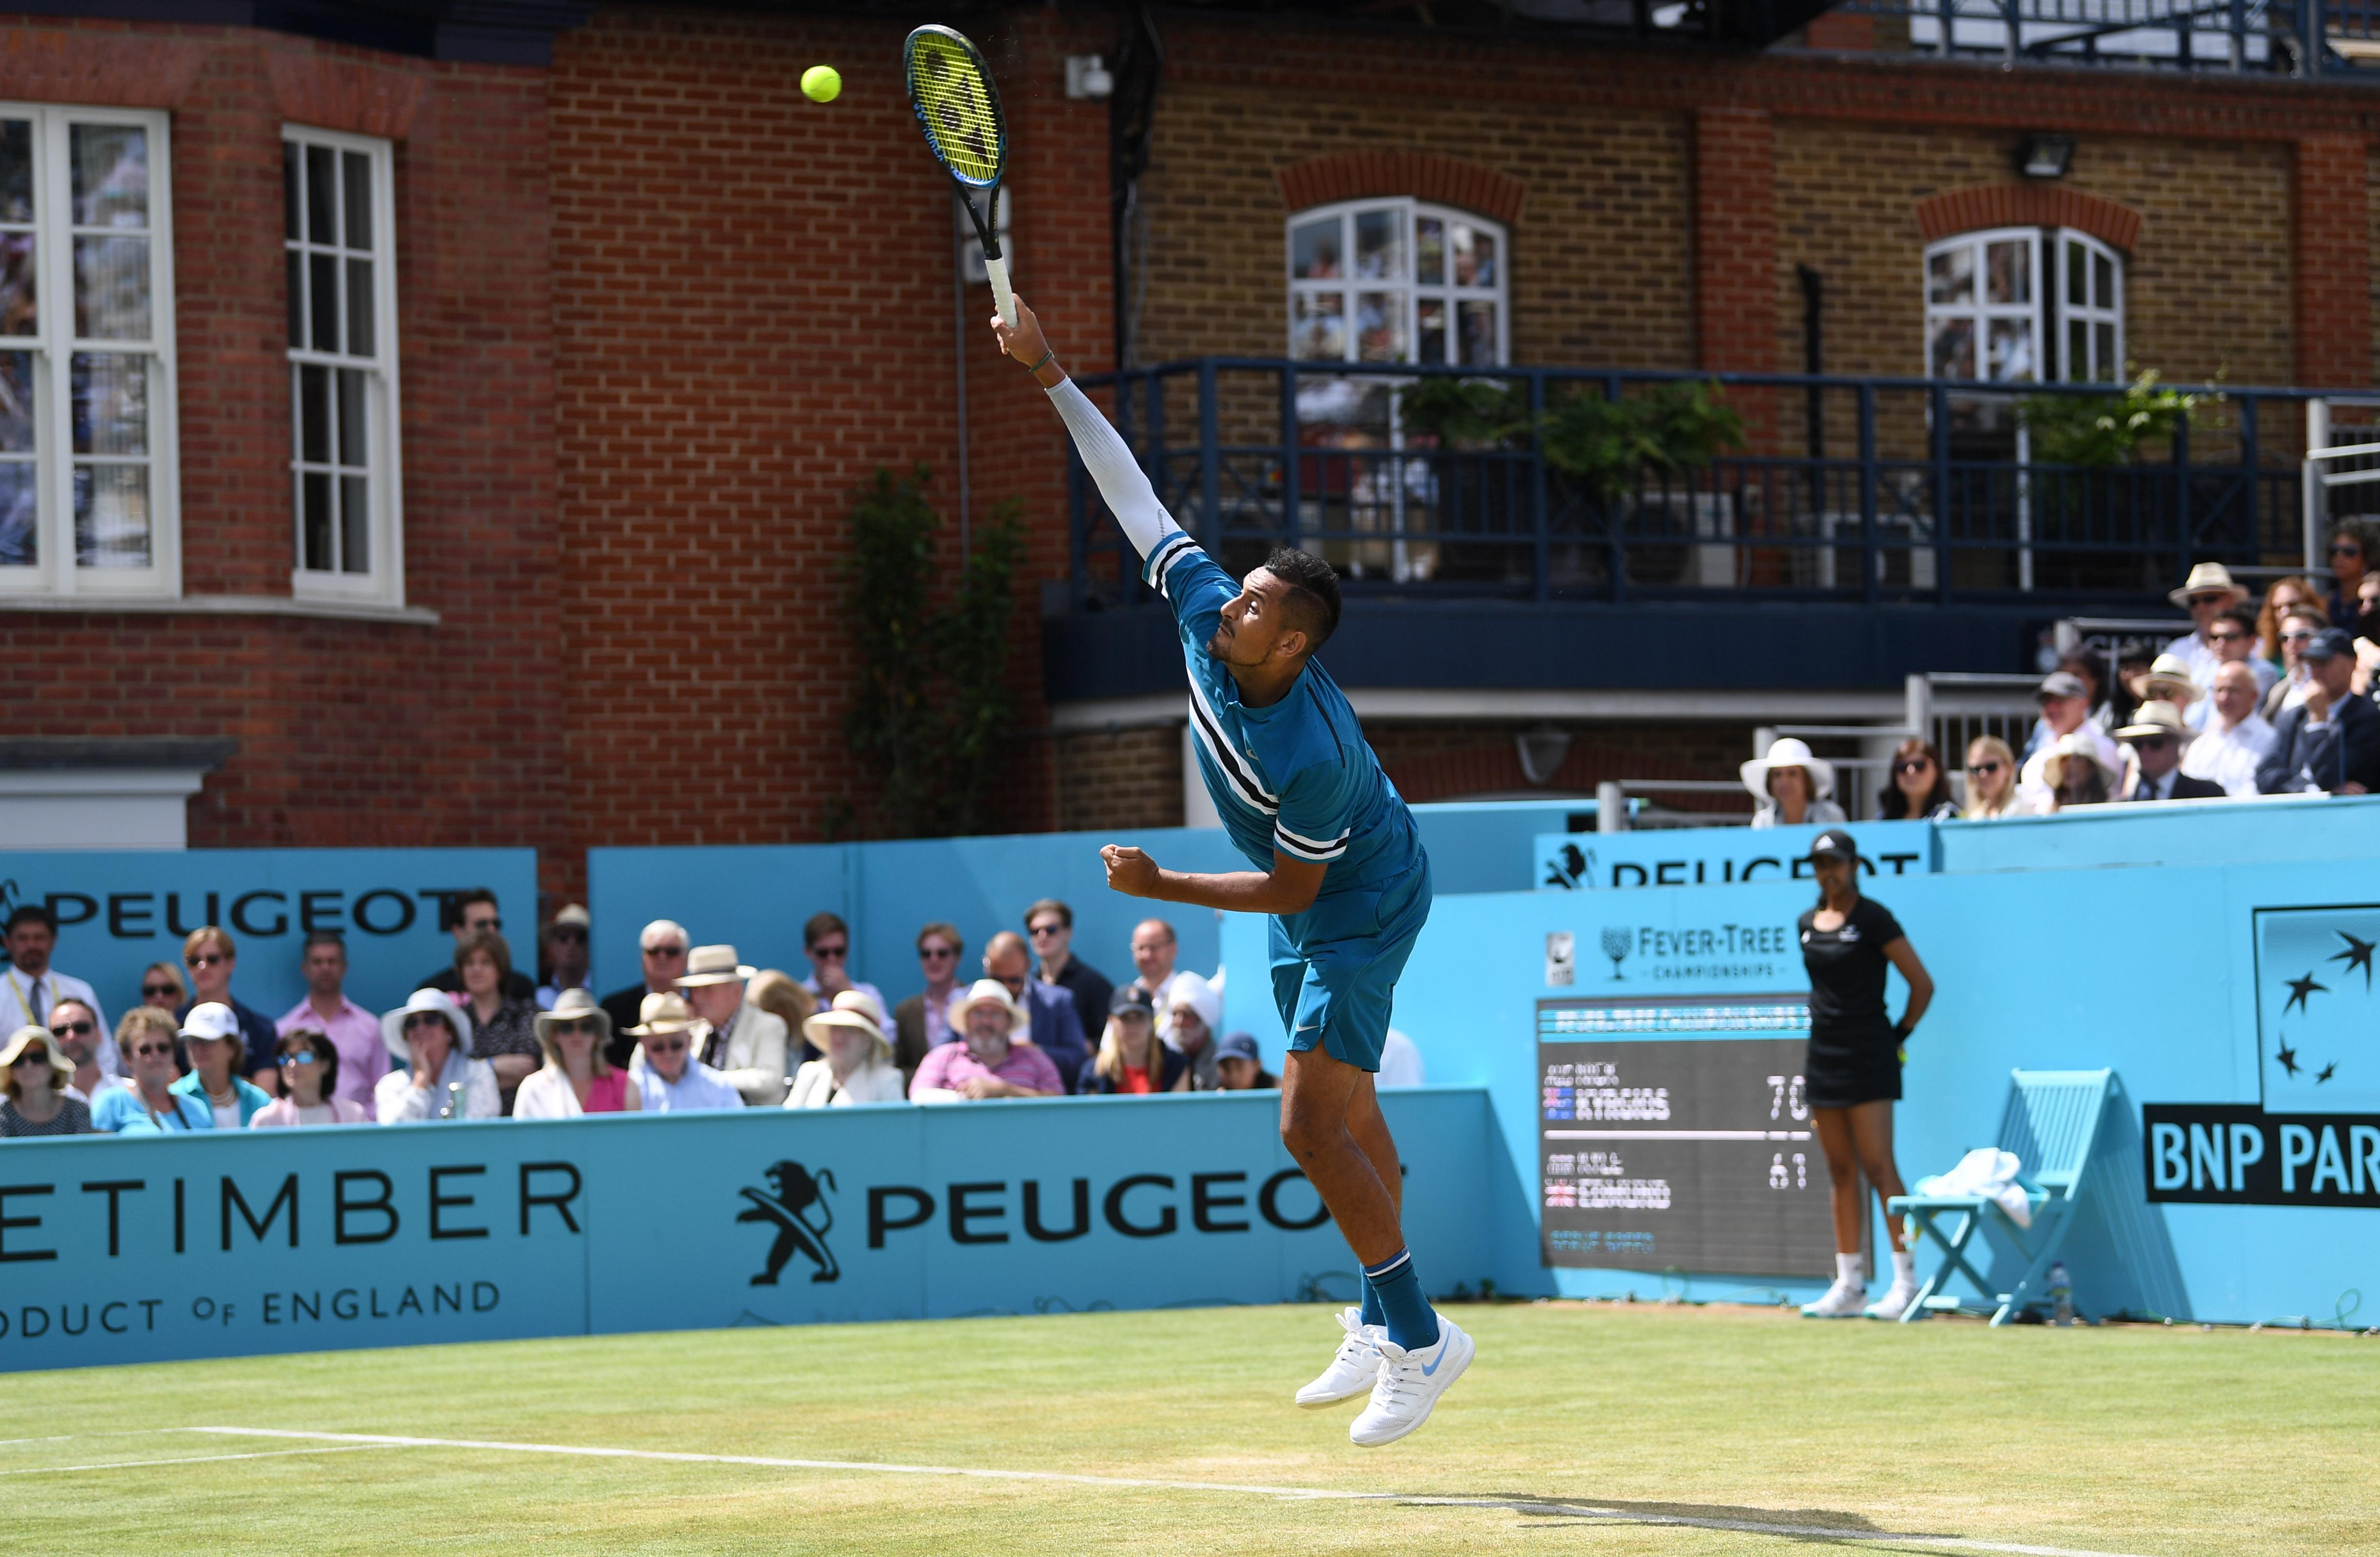 Nick Kyrgios served well throughout his second round contest with Kyle Edmund